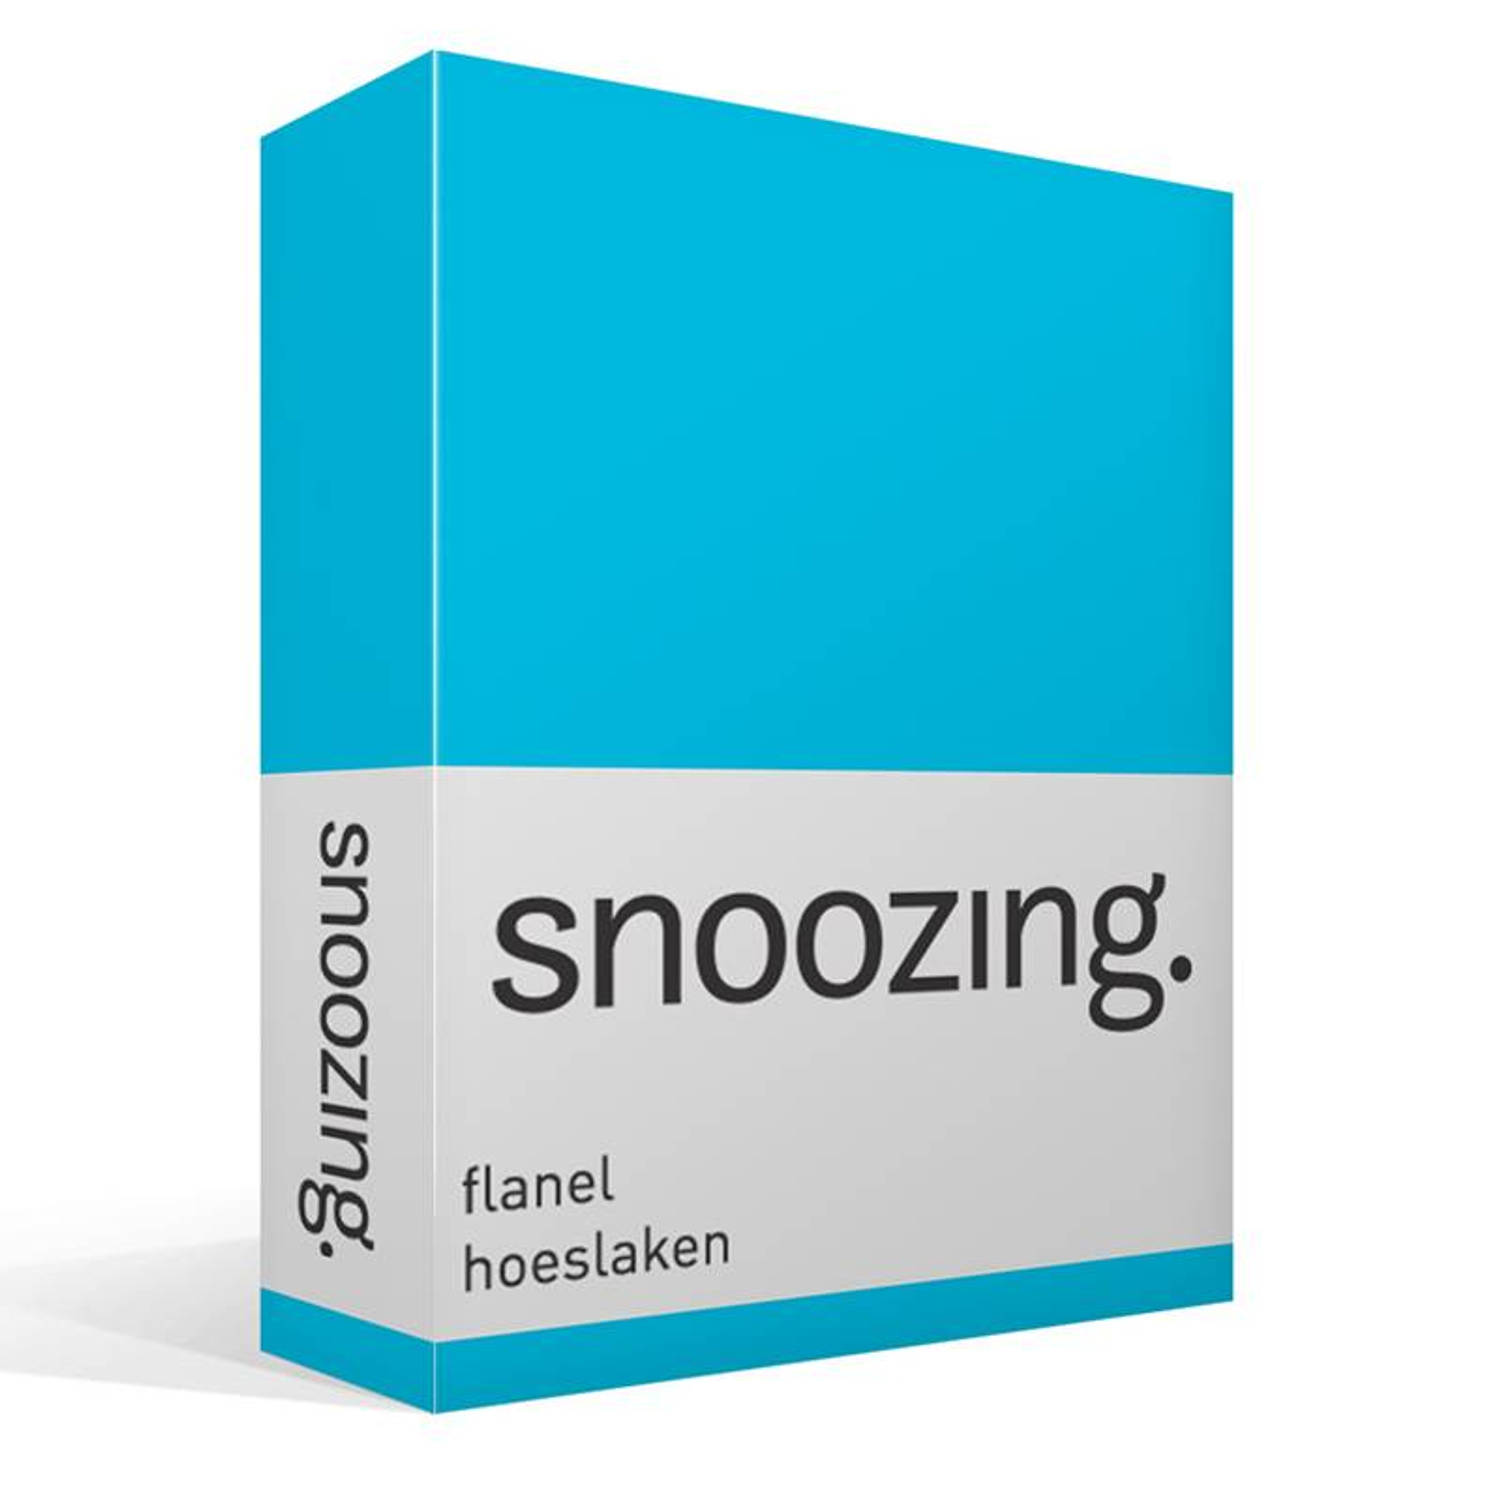 Snoozing flanel hoeslaken - 1-persoons (90/100x220 cm)